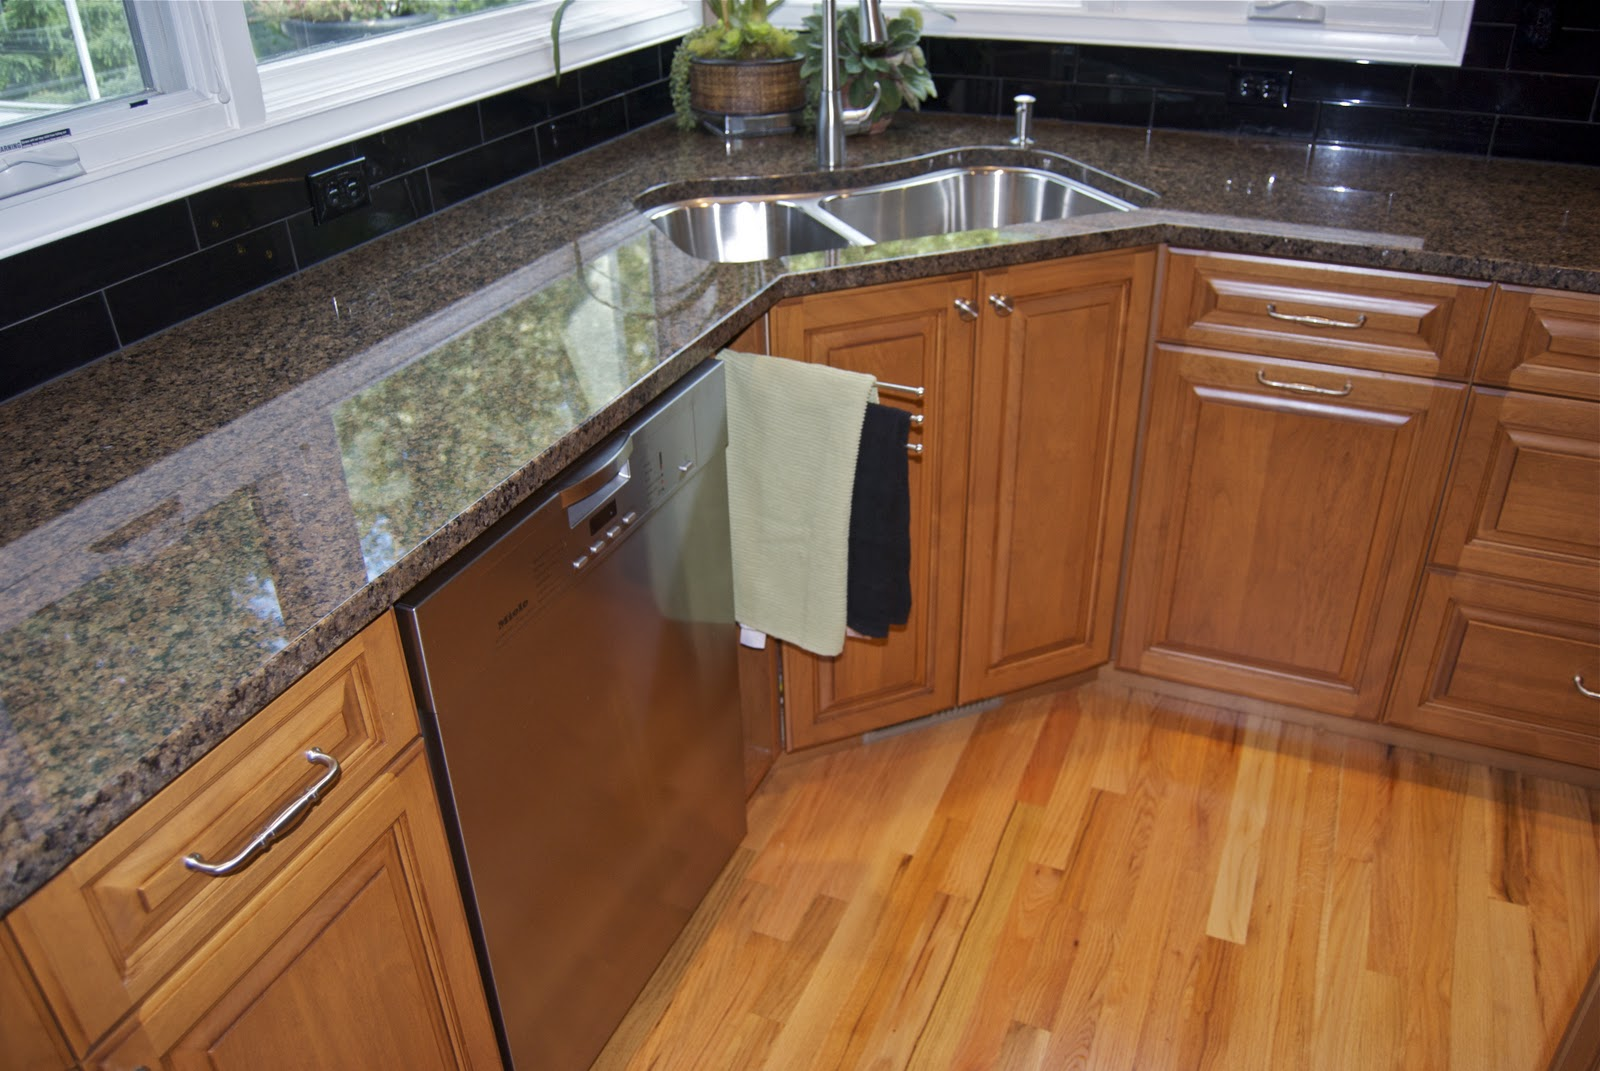 Ordinary Kitchen Corner Sinks Stainless Steel #10: Kitchen Corner Sink Cabinet Design